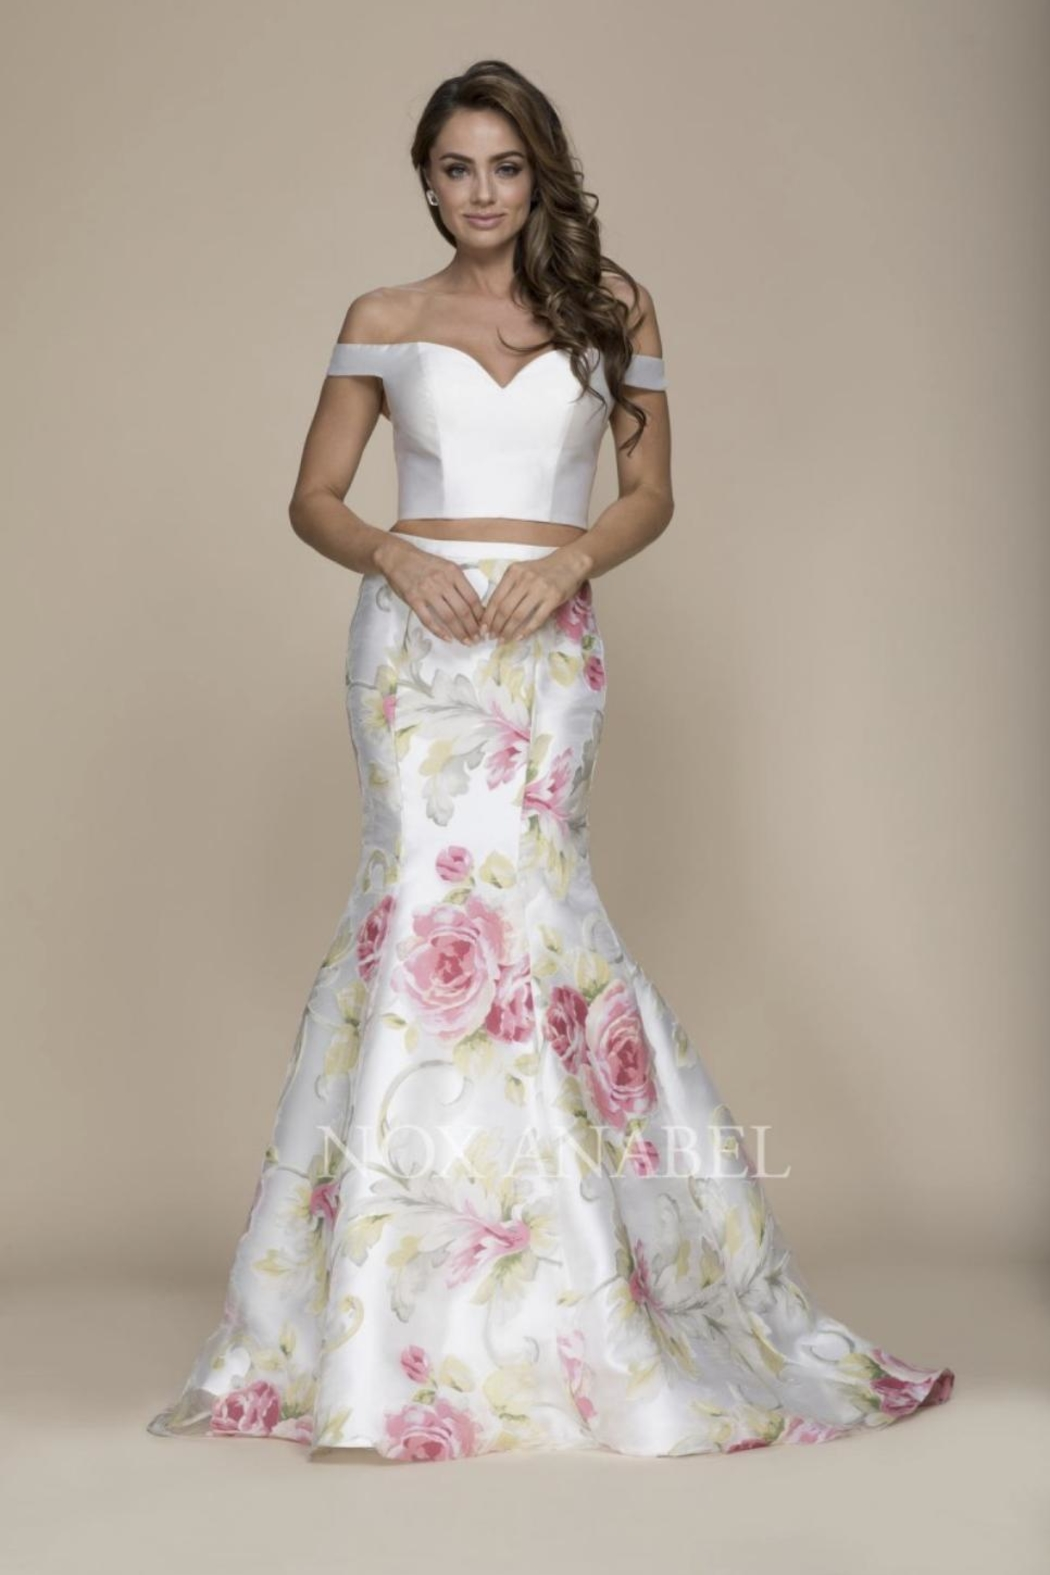 Nox A N A B E L Two Piece Off Shoulder Formal Dress From Florida By